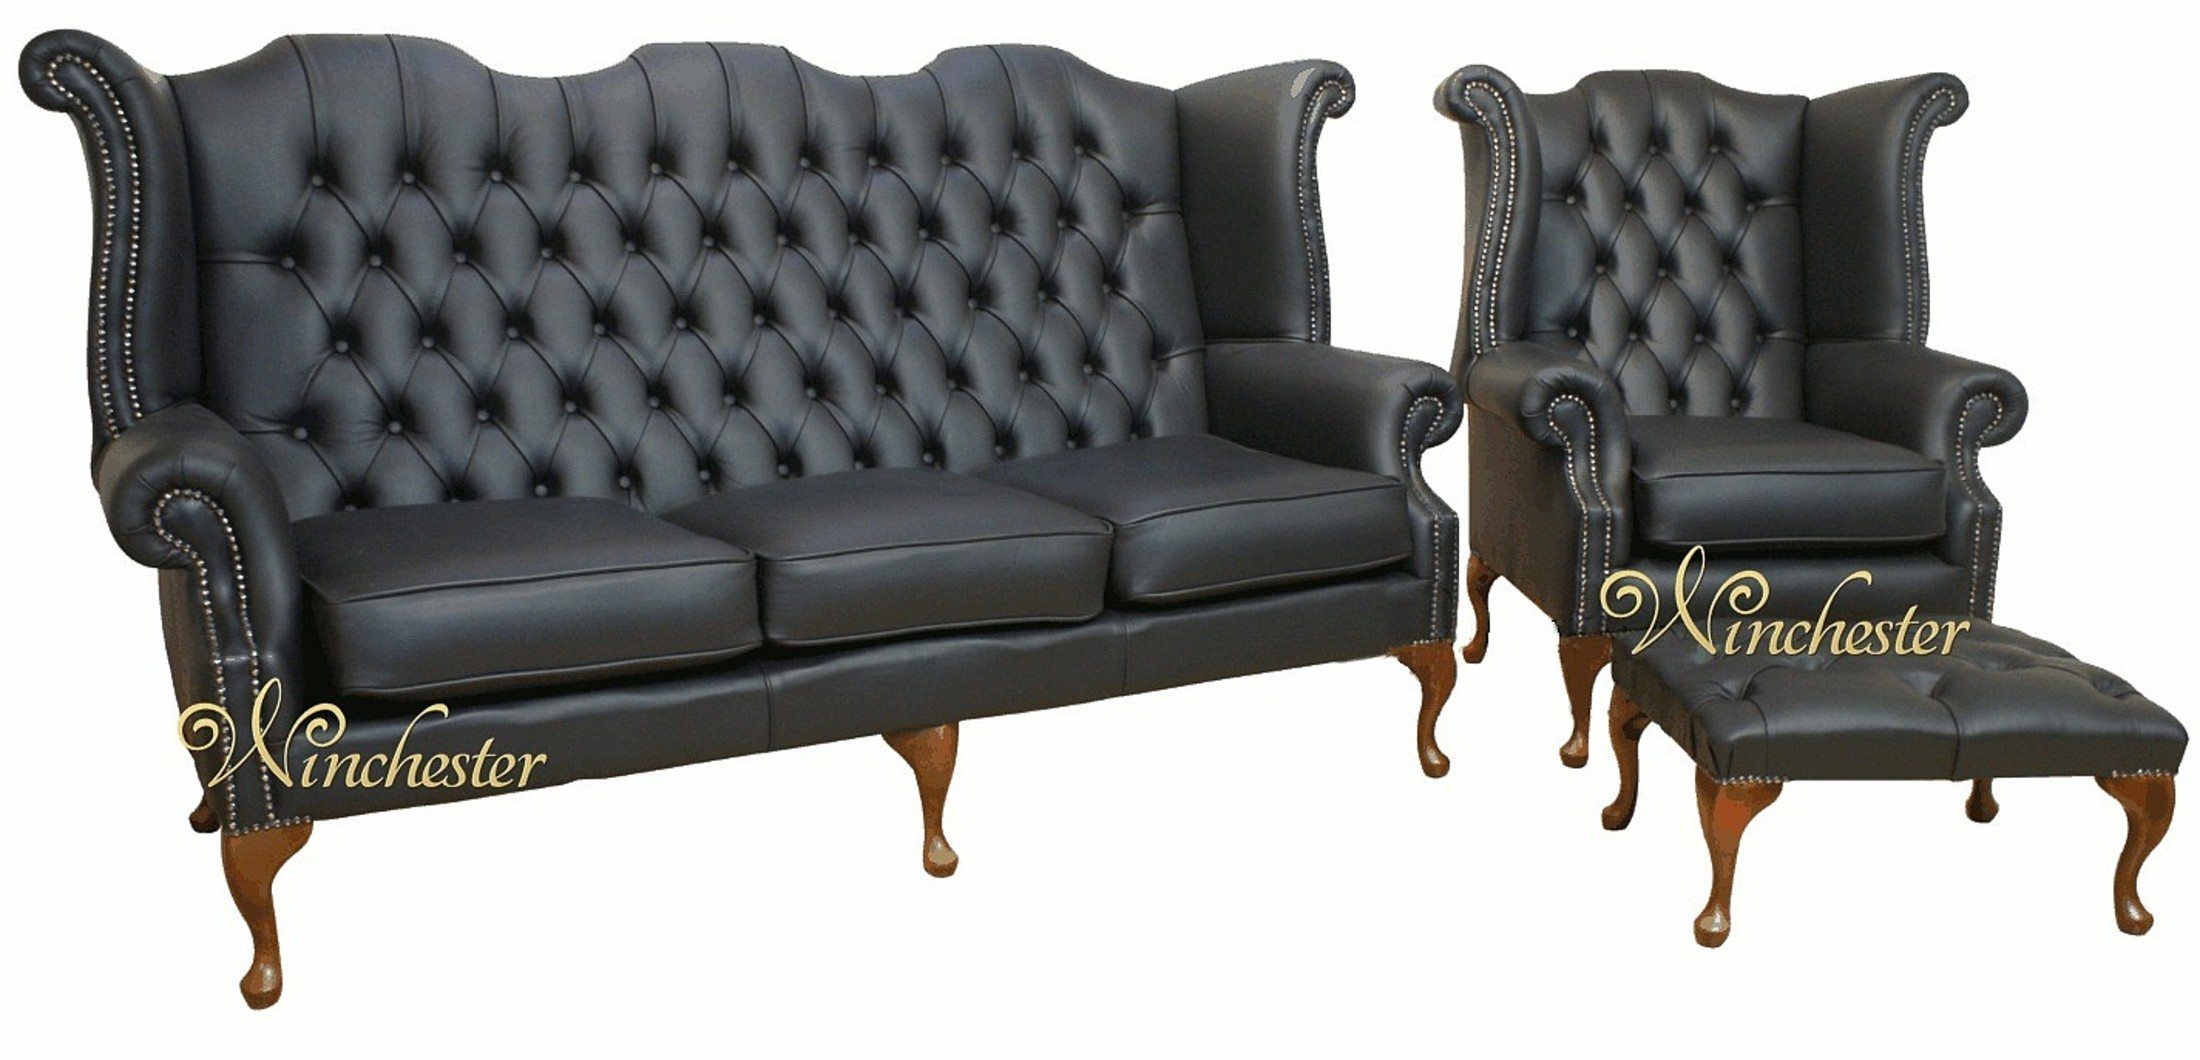 Chesterfield Queen Anne 3 Seater Sofa Wing